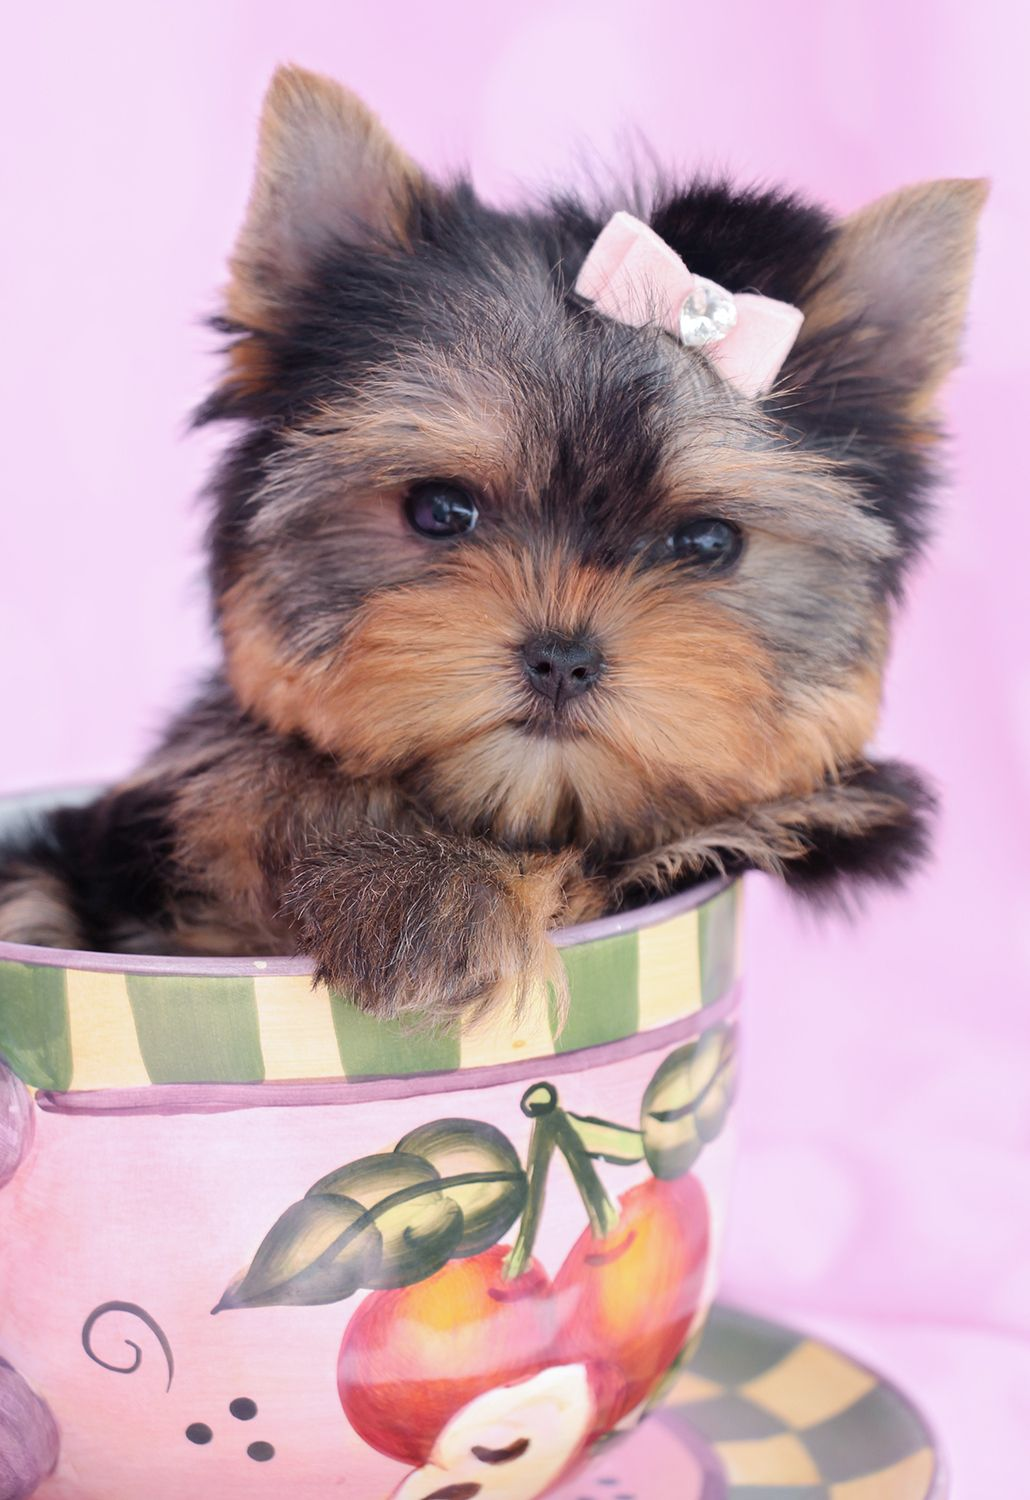 Teacup Yorkie Puppy By Teacups Puppies Boutique Teacup Yorkie Puppy Teacup Puppies Yorkie Puppy